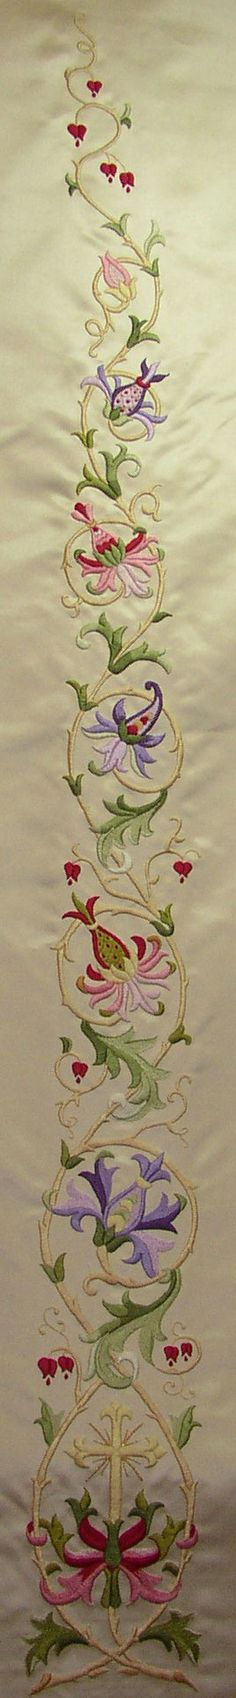 Silk on Silk, Satin Stitch - Complete Stole Jacobean Embroidery, Types Of Embroidery, Embroidery Needles, Ribbon Embroidery, Cross Stitch Embroidery, Machine Embroidery Designs, Embroidery Patterns, Blackwork, Passementerie